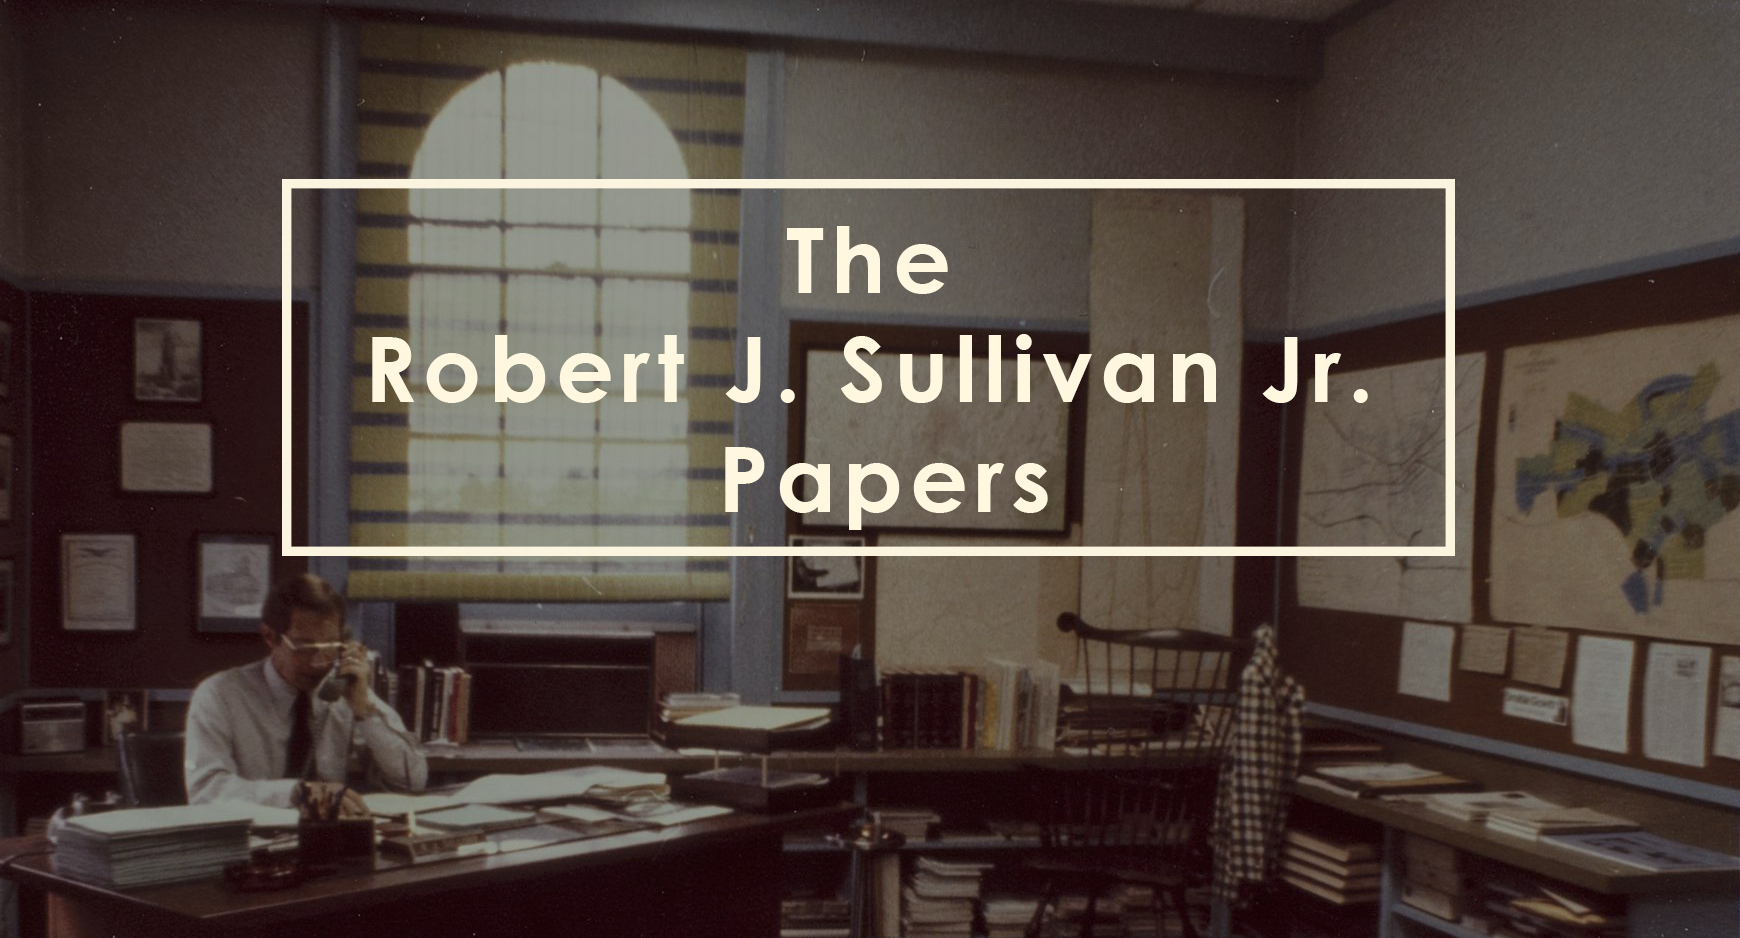 Robert James Sullivan Jr. Papers